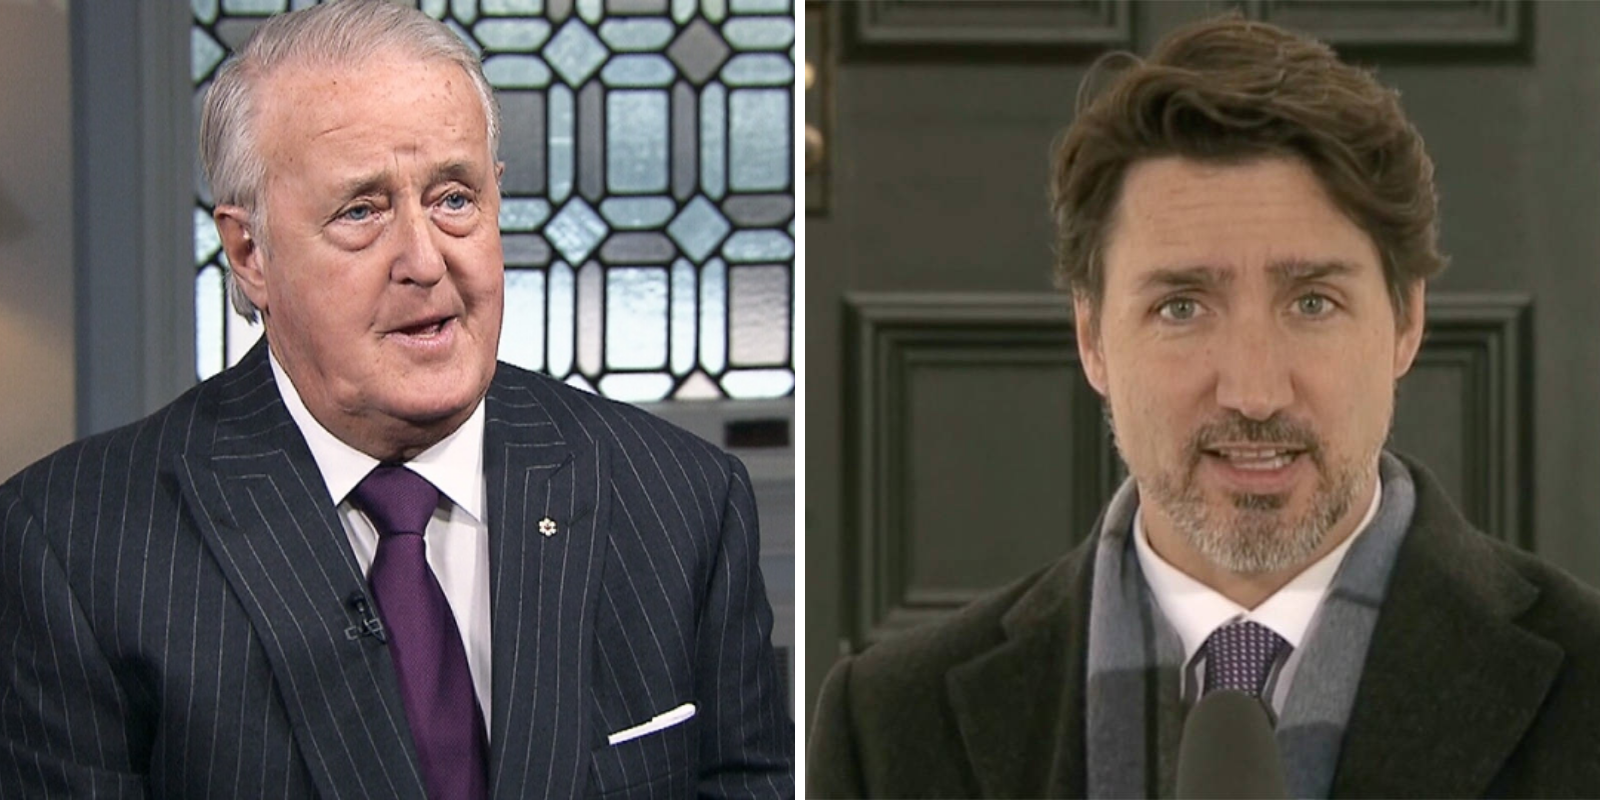 Brian Mulroney tells Trudeau to rethink Canada's relationship with China